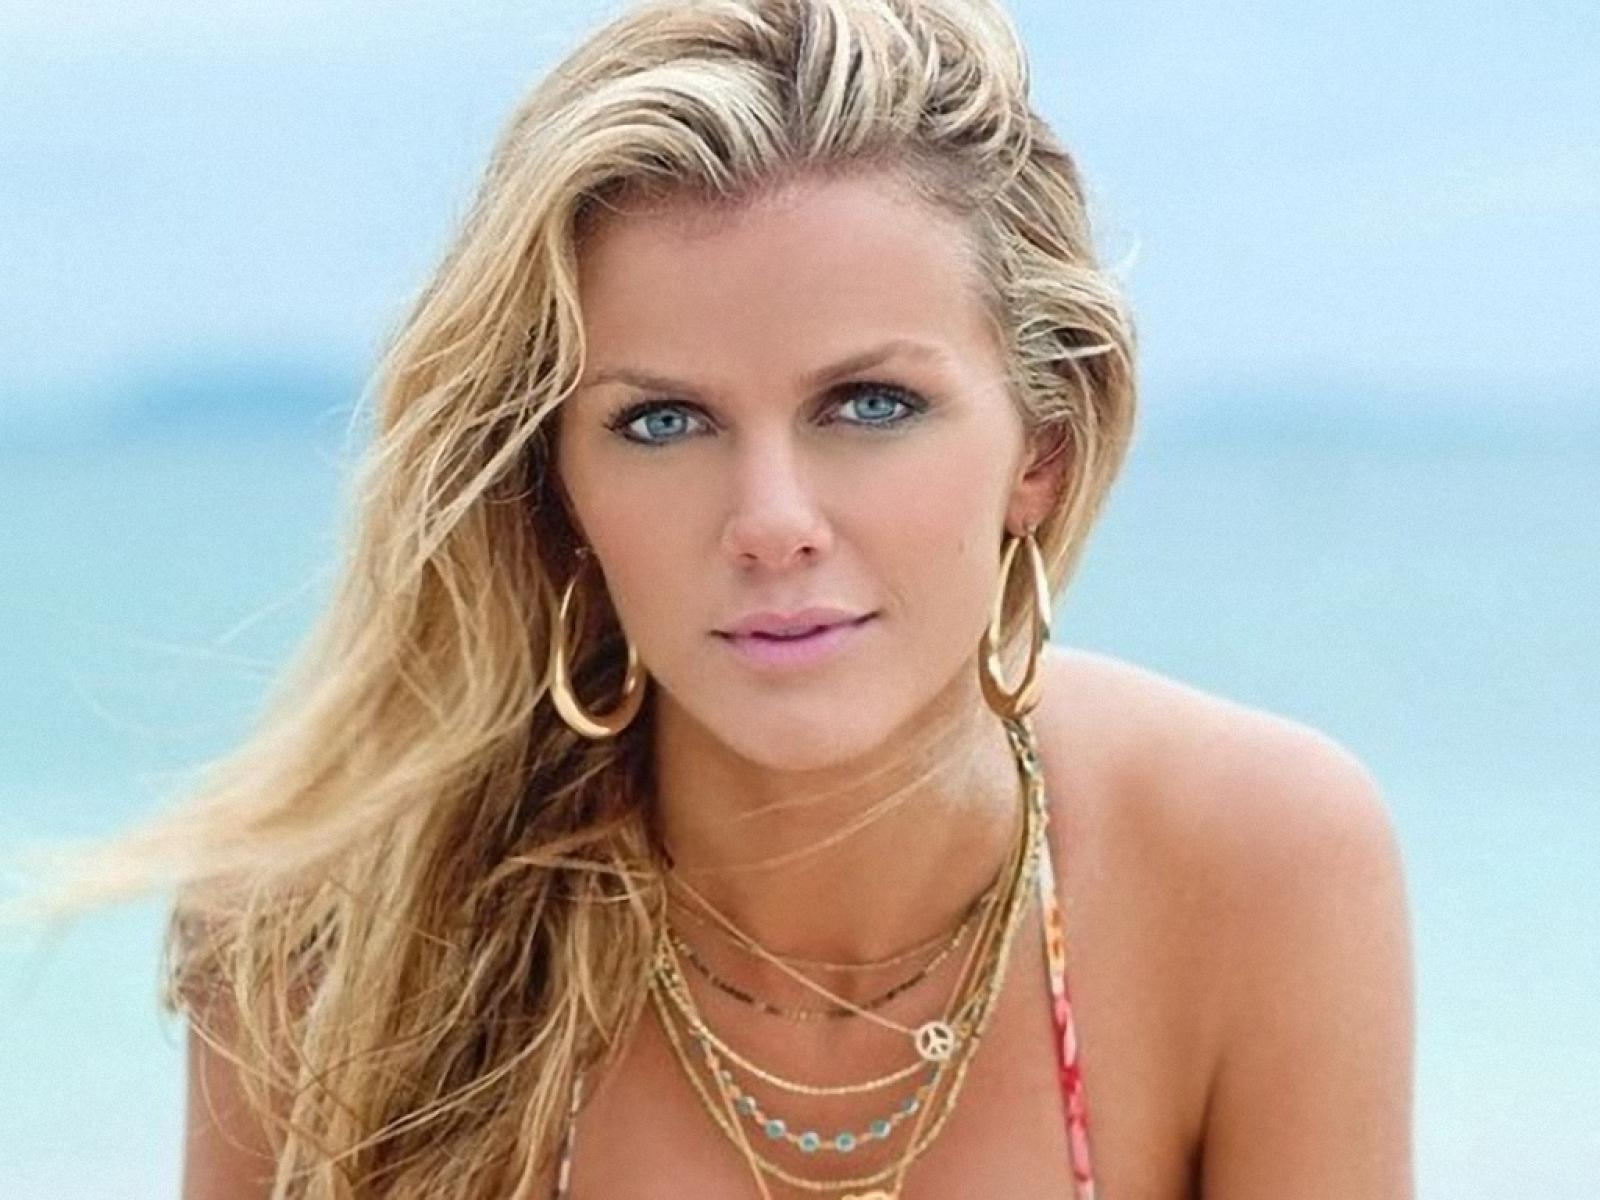 Iphone wallpaper free - Brooklyn Decker Wallpapers High Quality Download Free